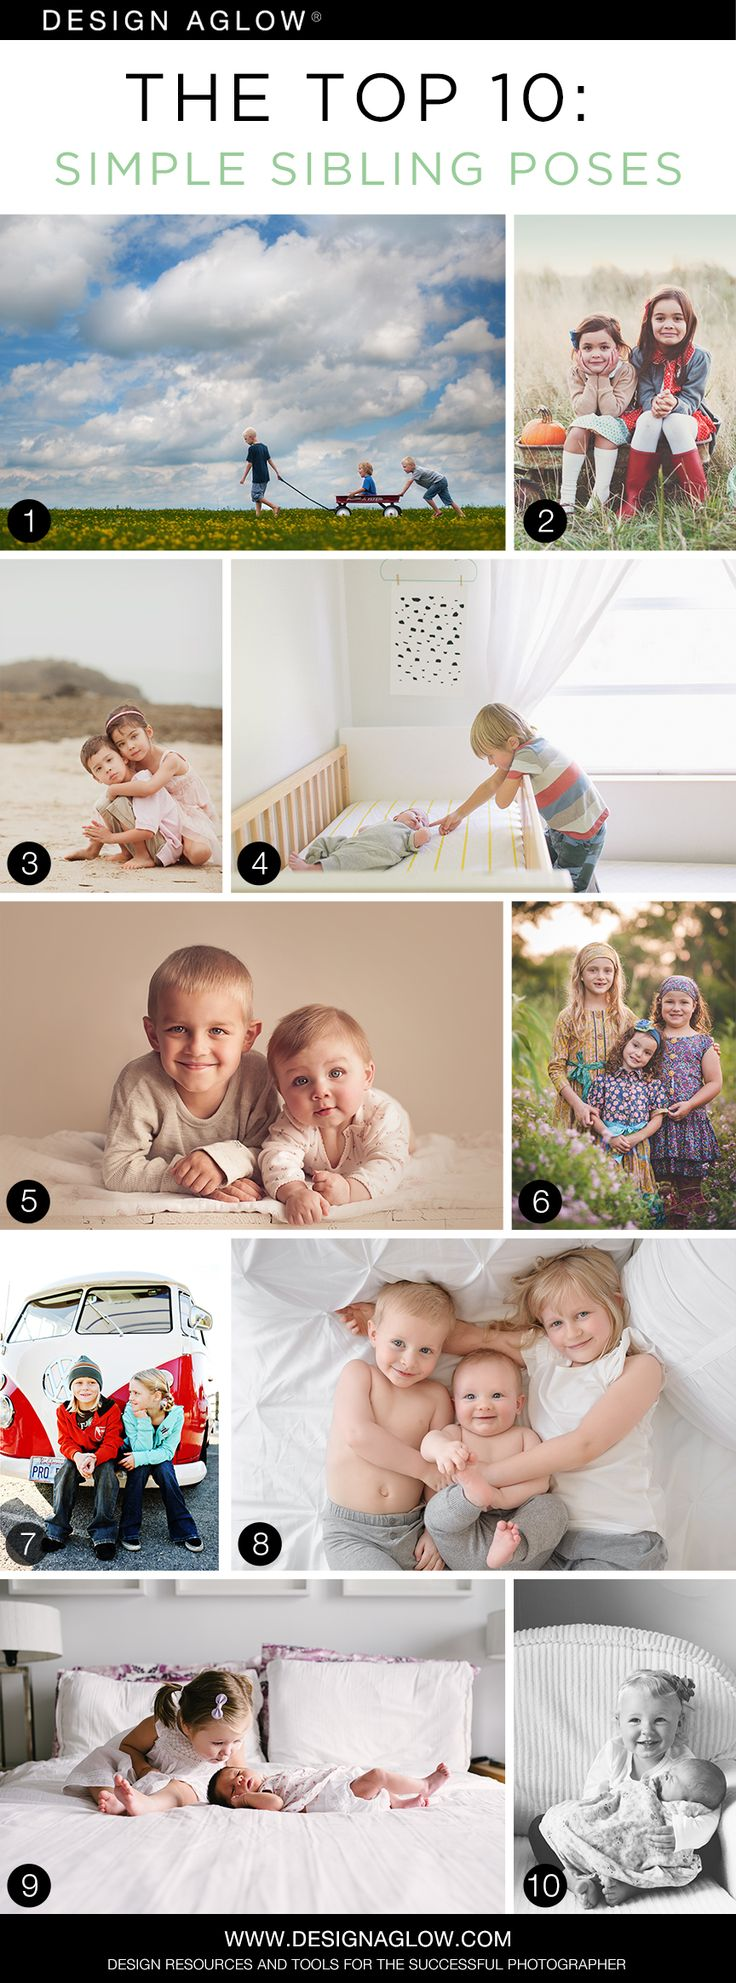 The Top 10: Simple Sibling Poses